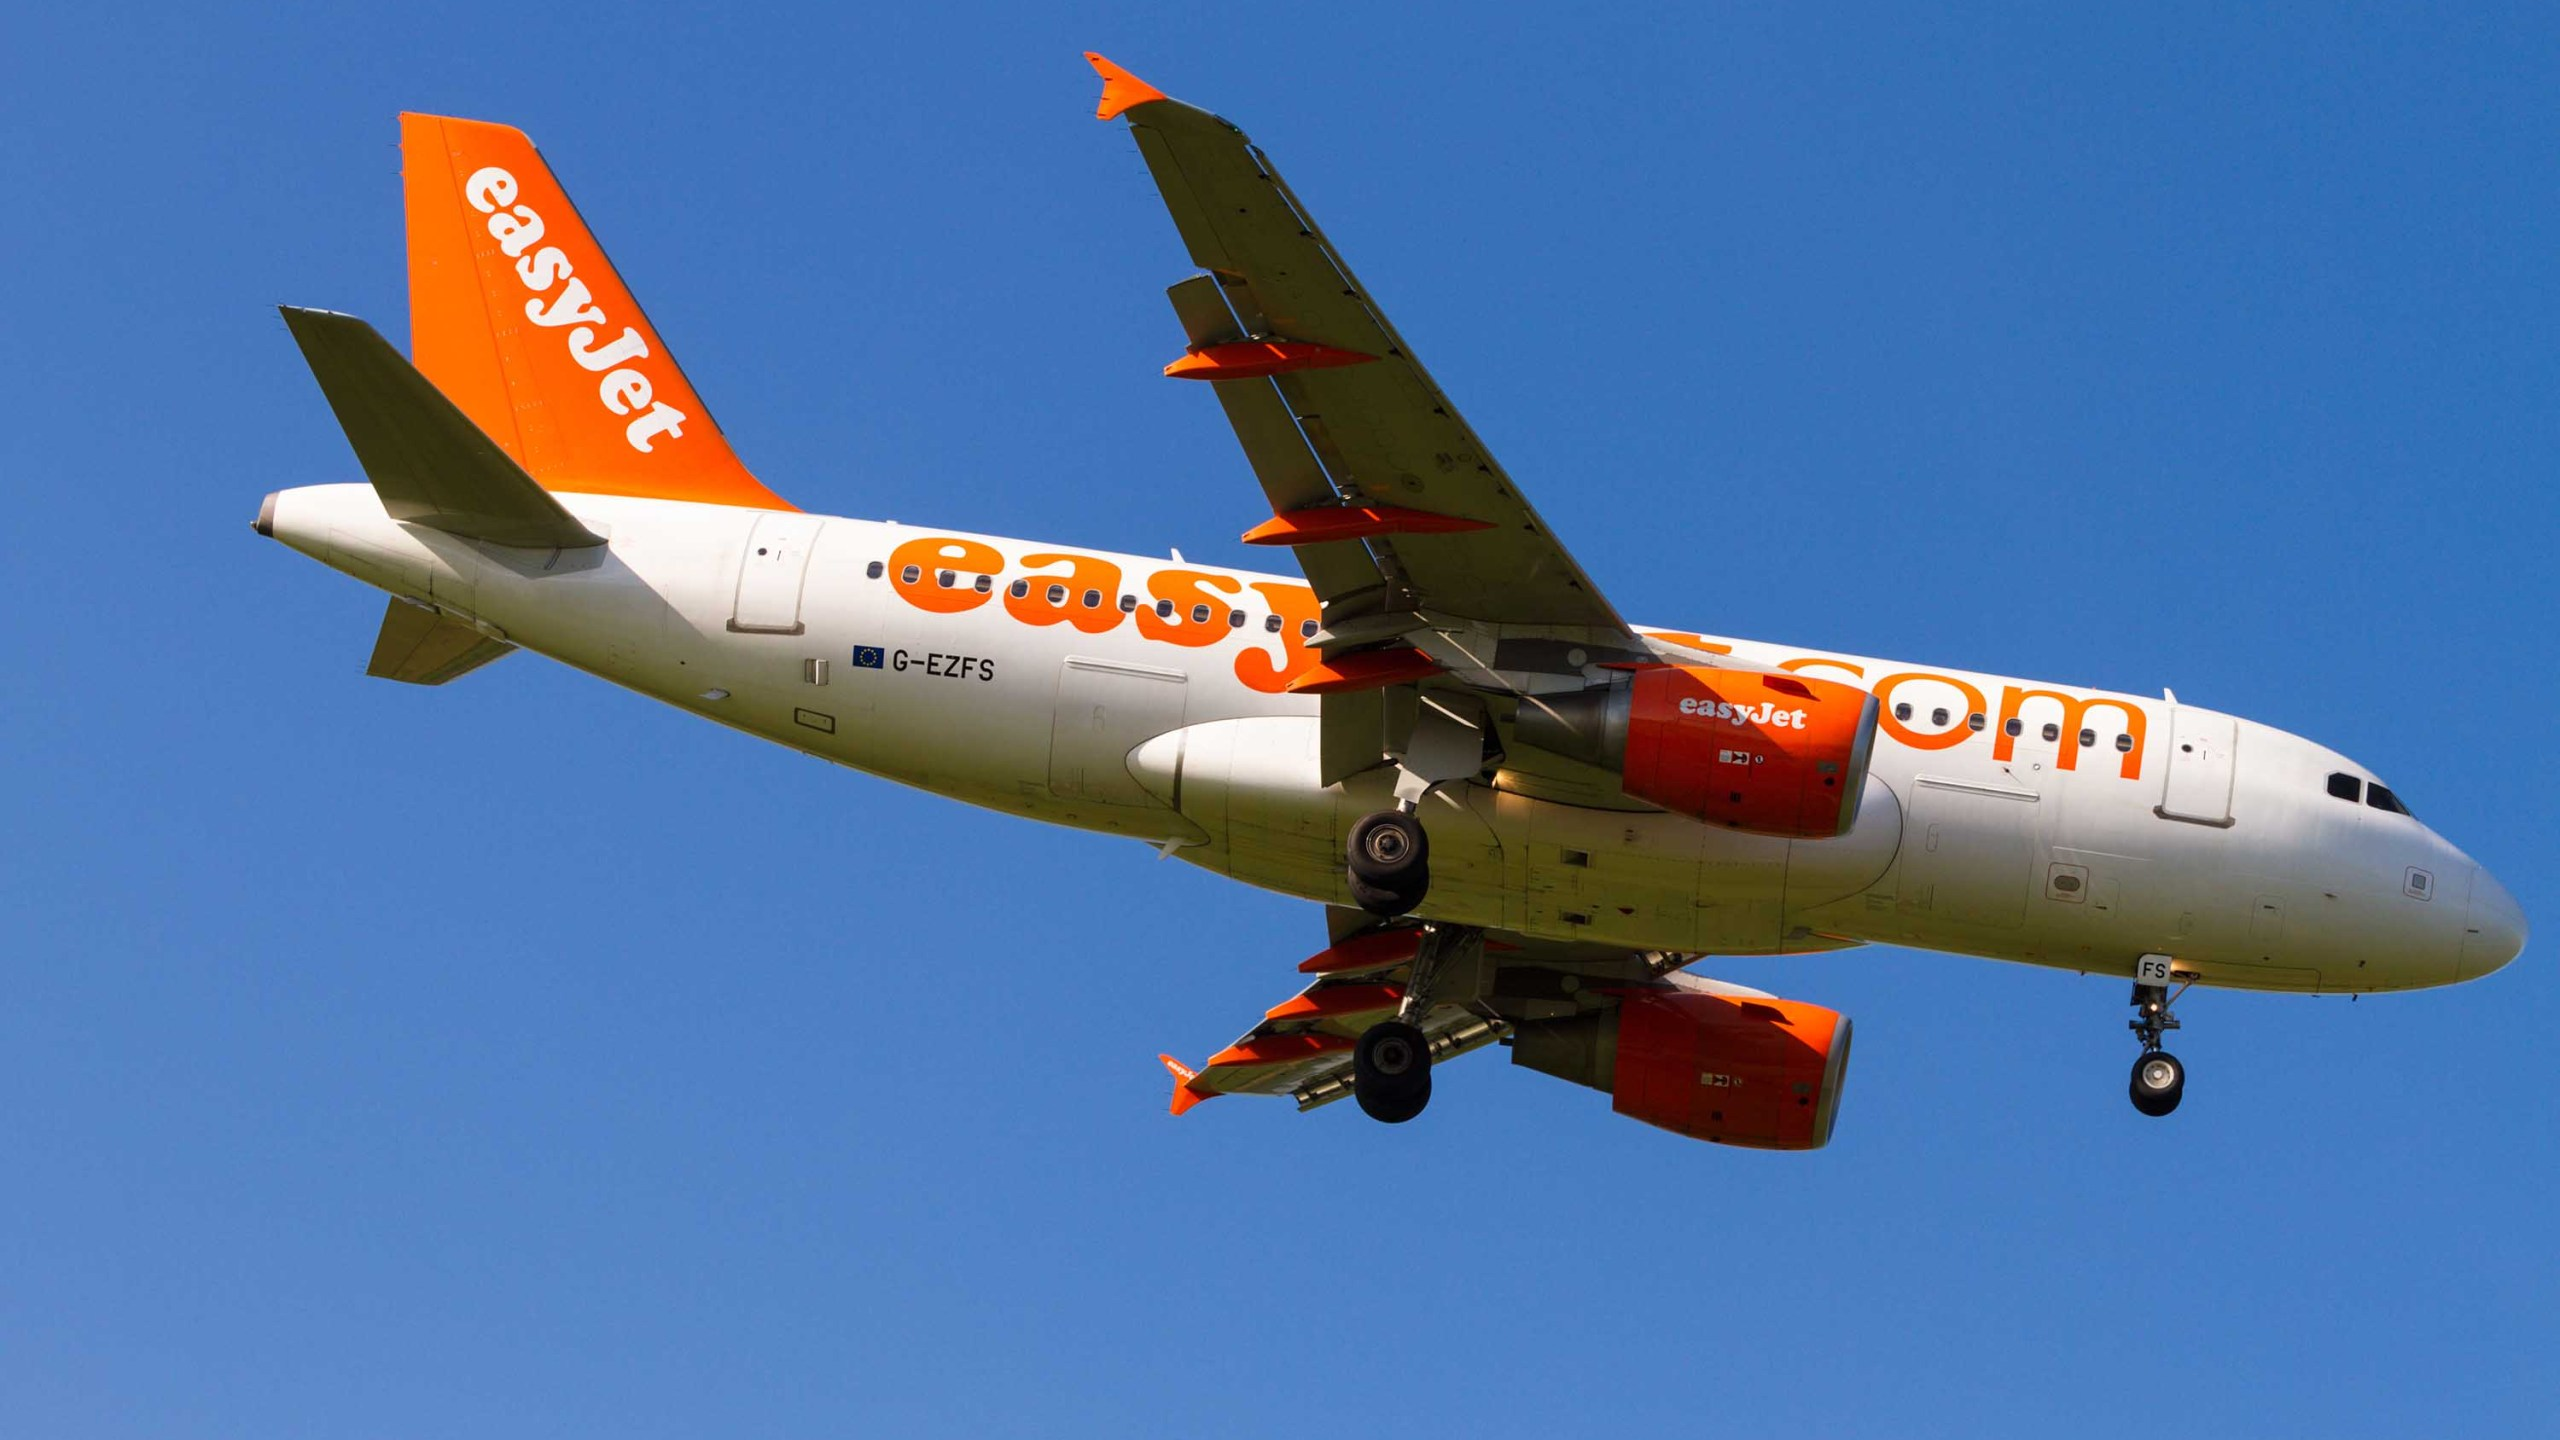 An Easyjet plane is pictured coming in to land in Manchester, England, in November 2013. (Shutterstock via CNN Wire)